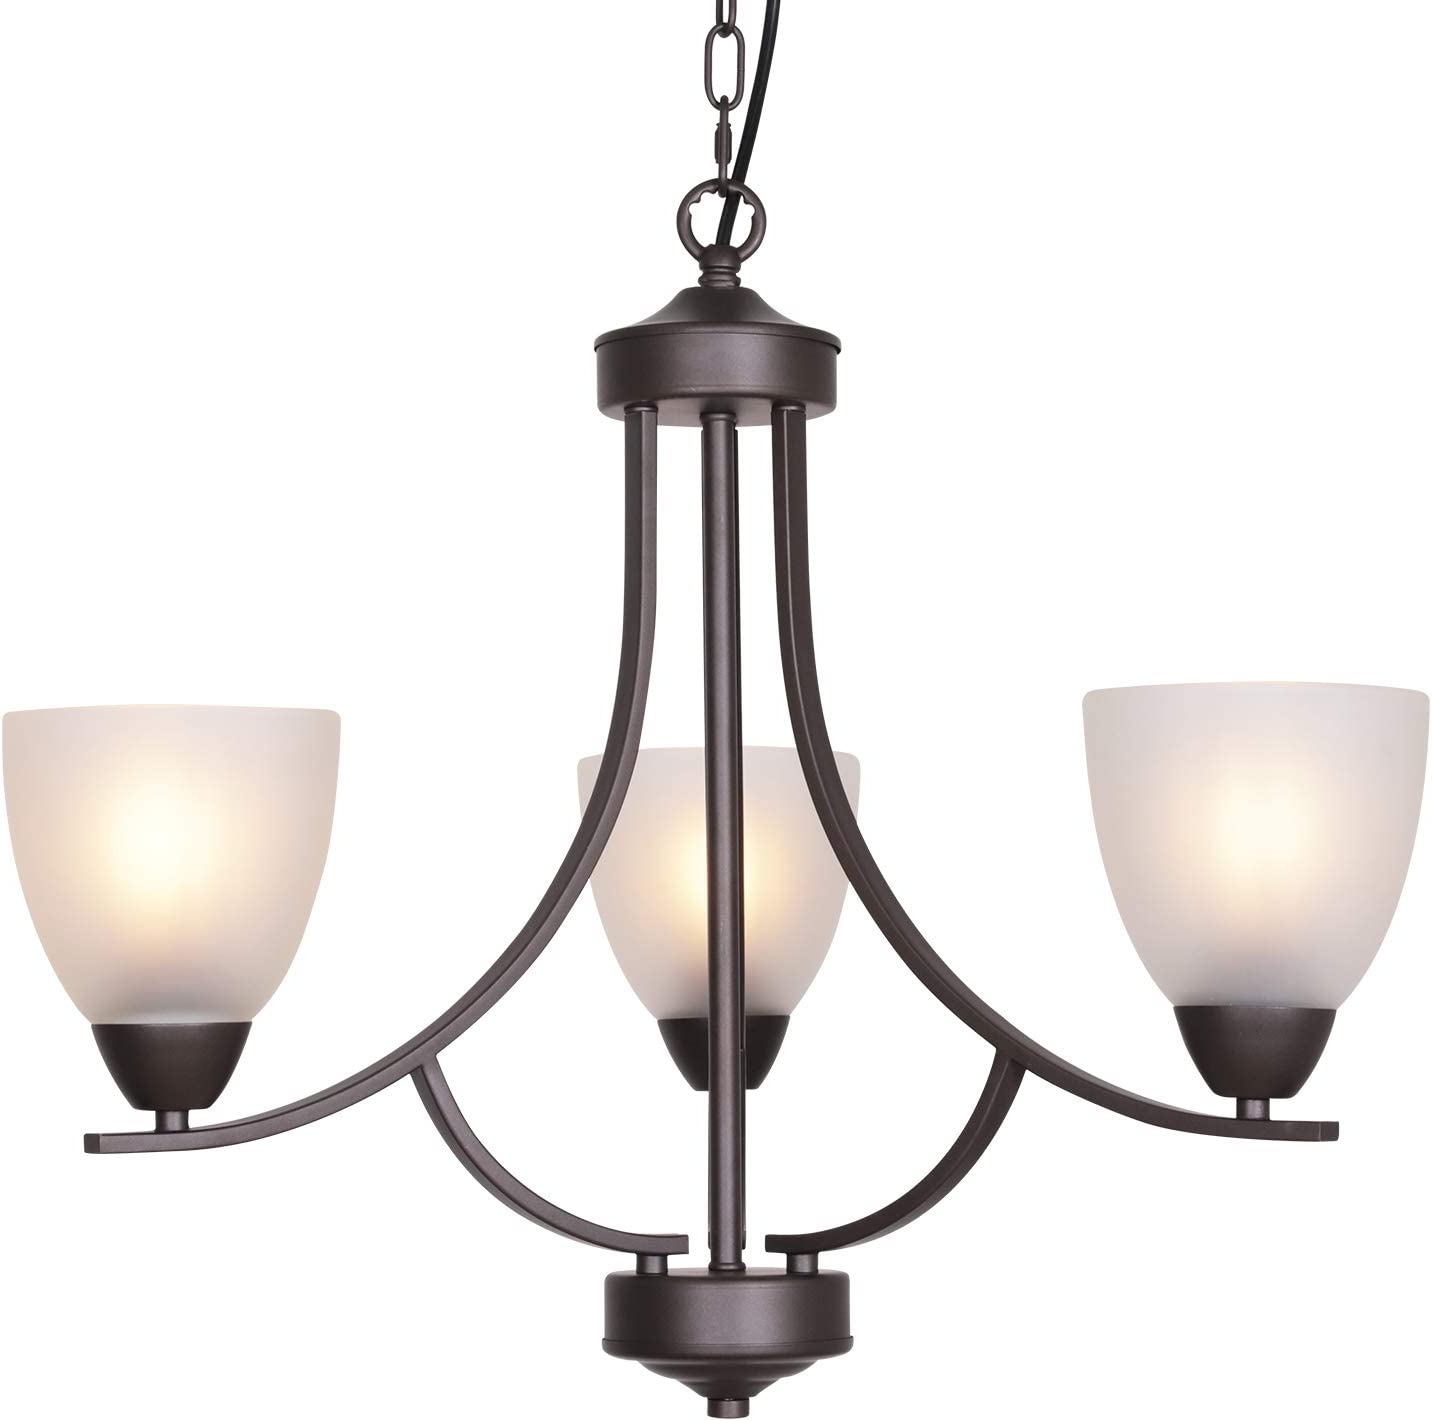 VINLUZ 3 Light Shaded Contemporary Chandeliers with Alabaster Glass Oil Rubbed Bronze Modern Light Fixtures Ceiling Hanging Mid Century Pendant Lighting for Dining Room Living Room Hallway Bedroom